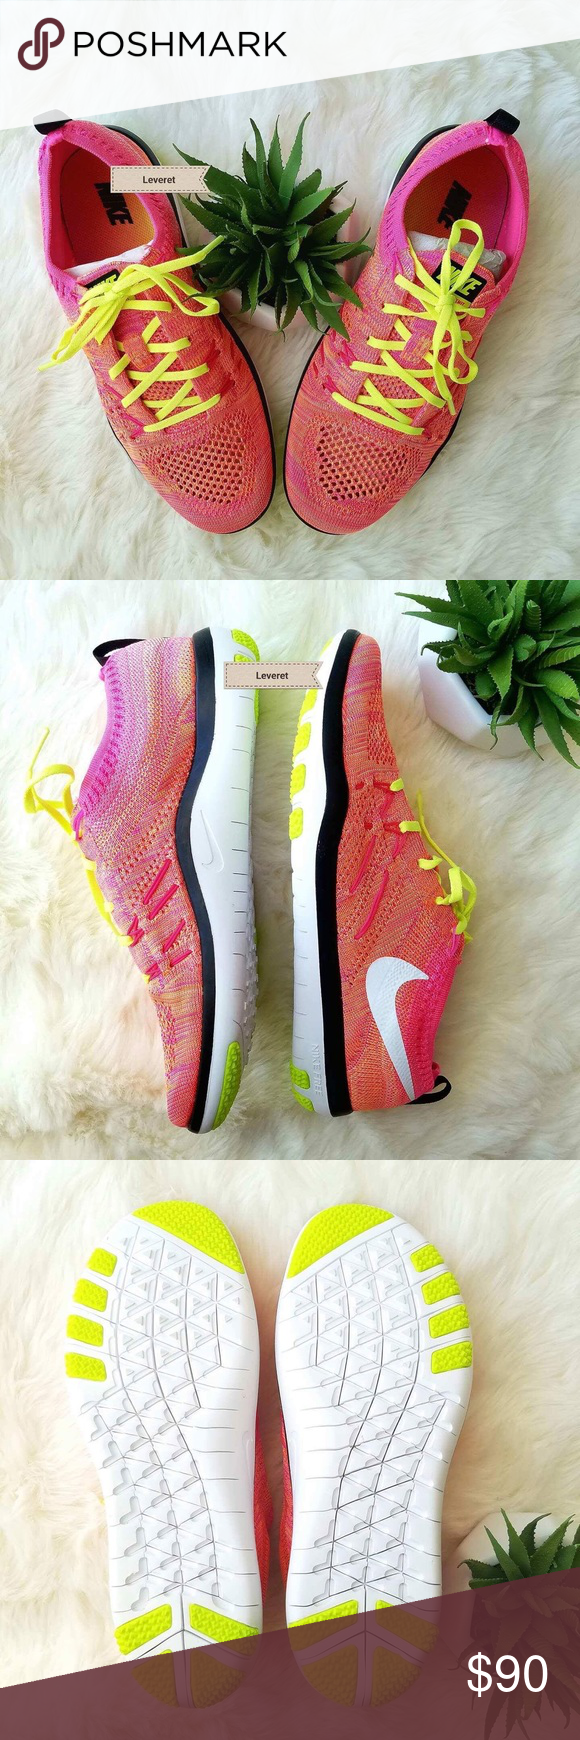 dccb7f563c152 8) NIKE WOMEN S Free TR Focus FK OC 100% Authentic New in Box NO LID ...